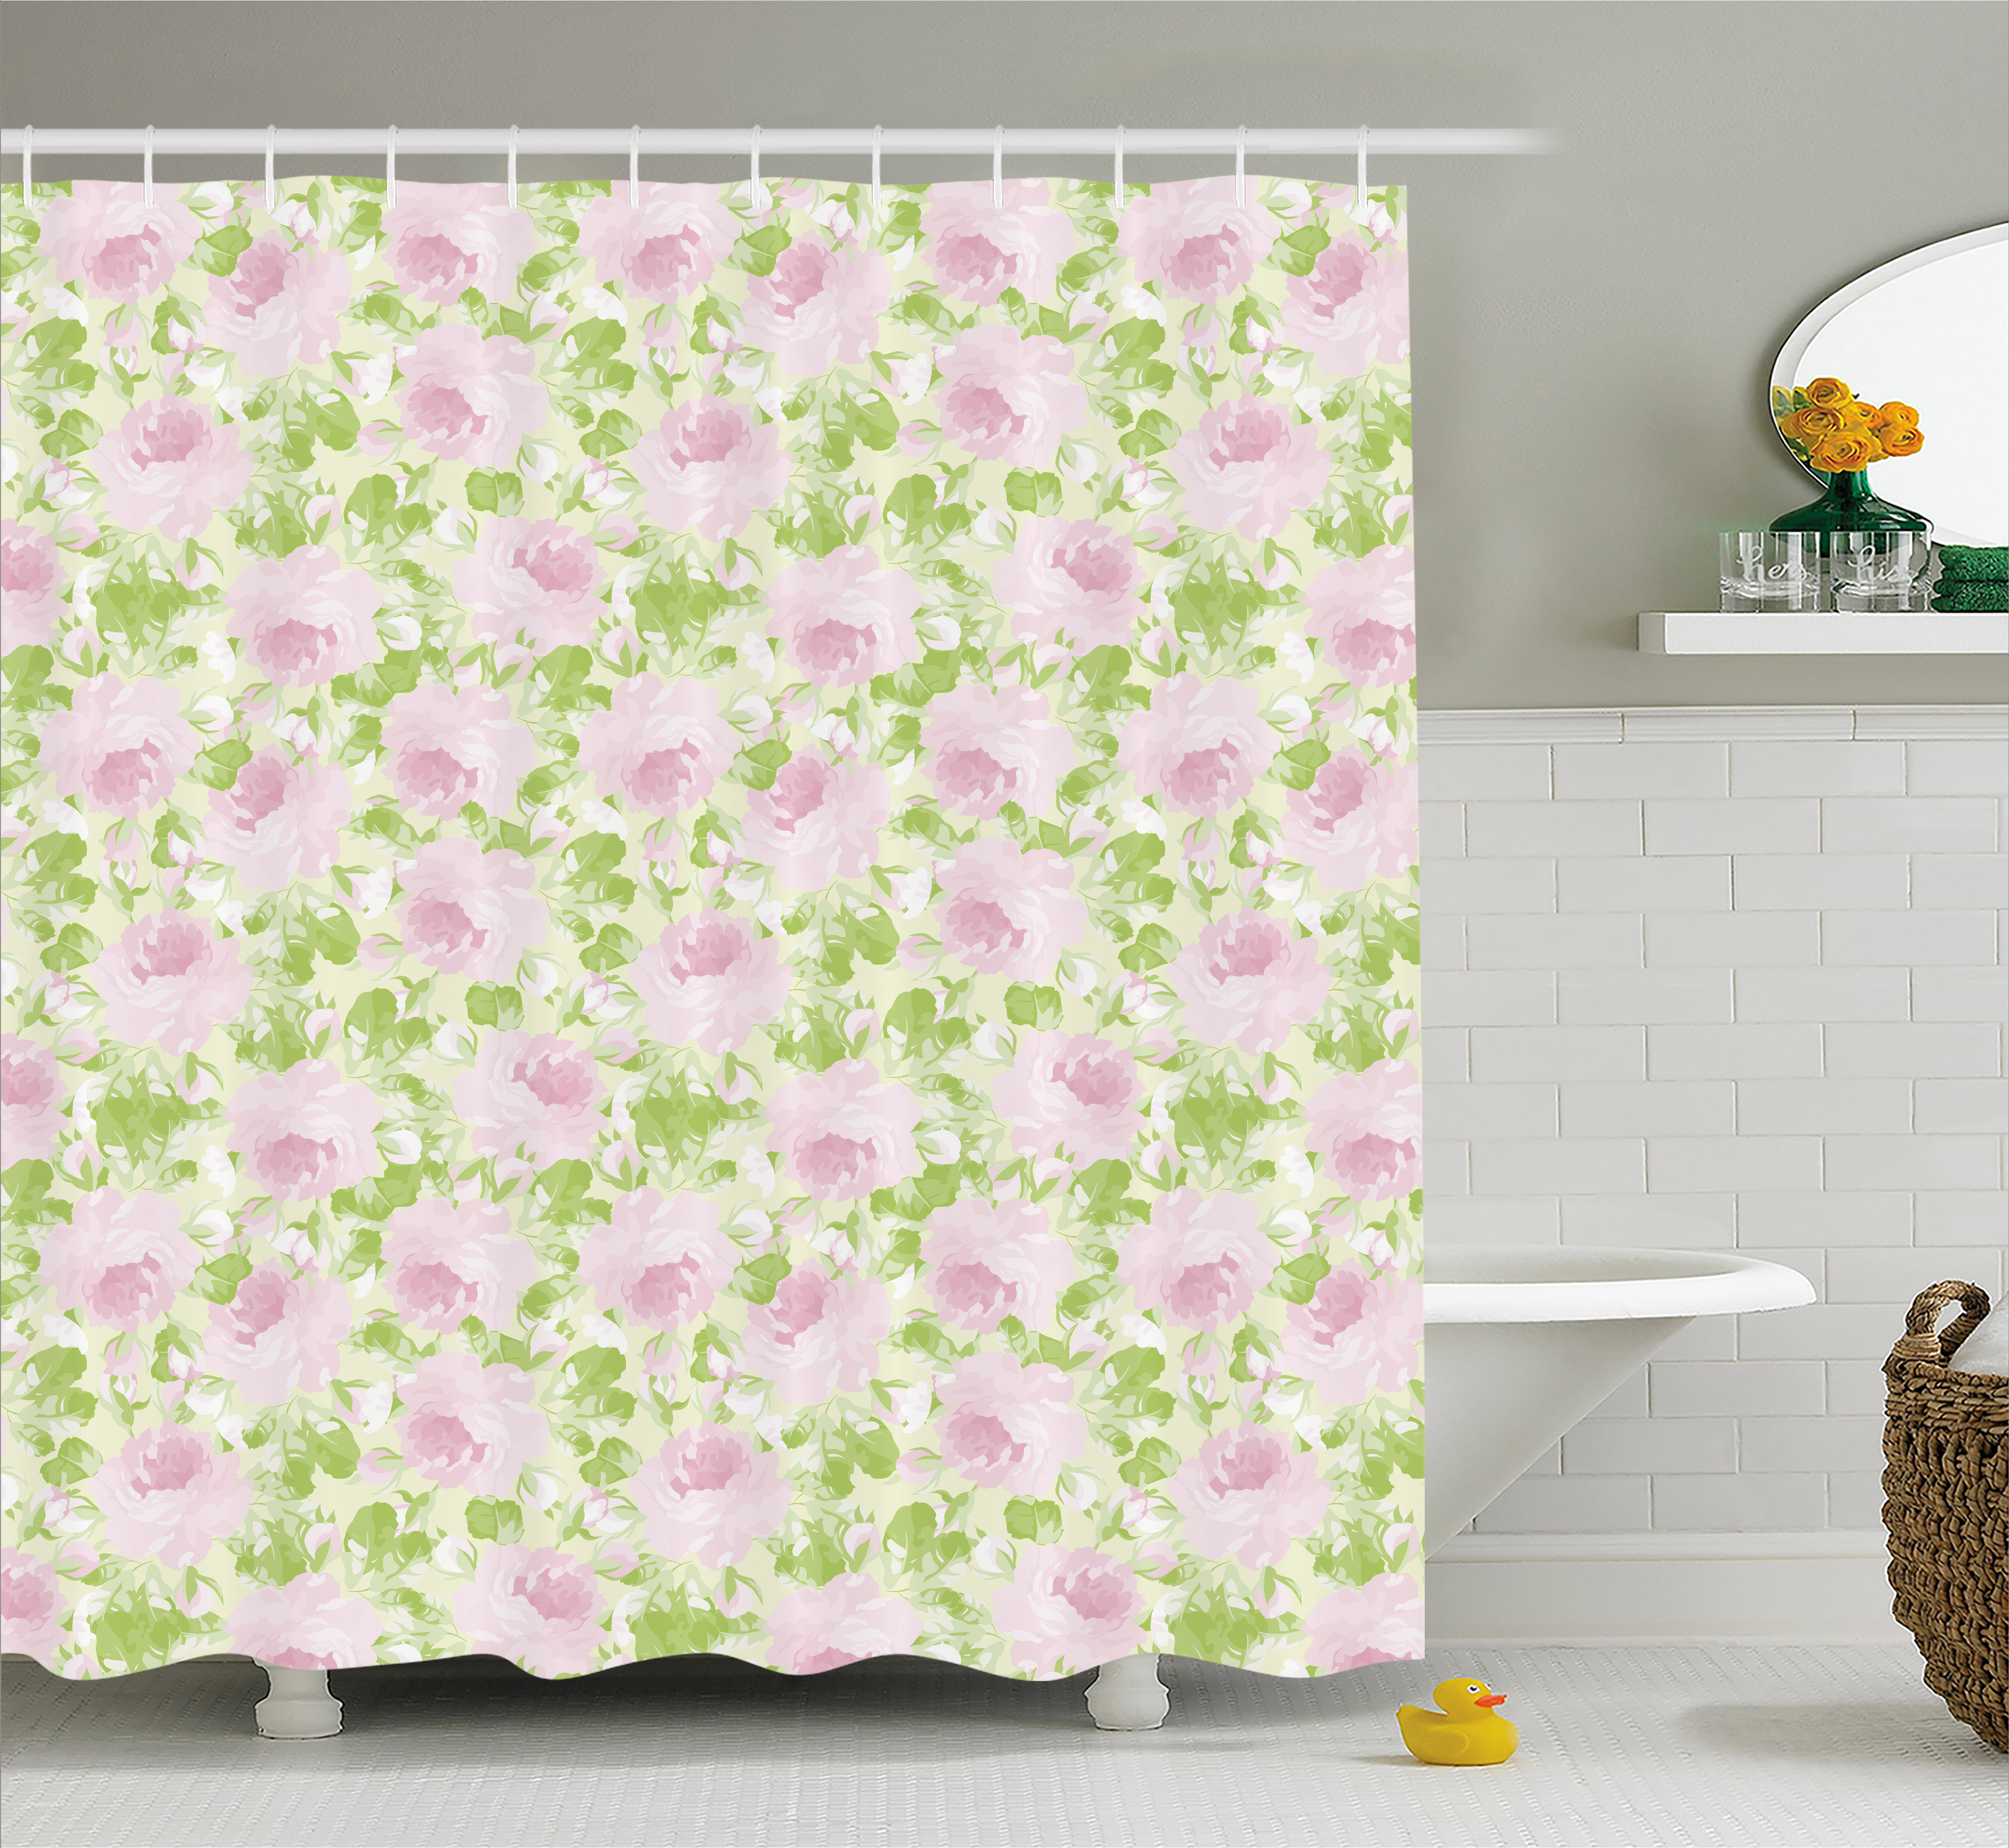 Shabby Chic Shower Curtain, Classical Spring Yard Florescence Pastel Colored Flourish Pattern, Fabric Bathroom Set with Hooks, 69W X 75L Inches Long, Pale Pink Pale Green, by Ambesonne